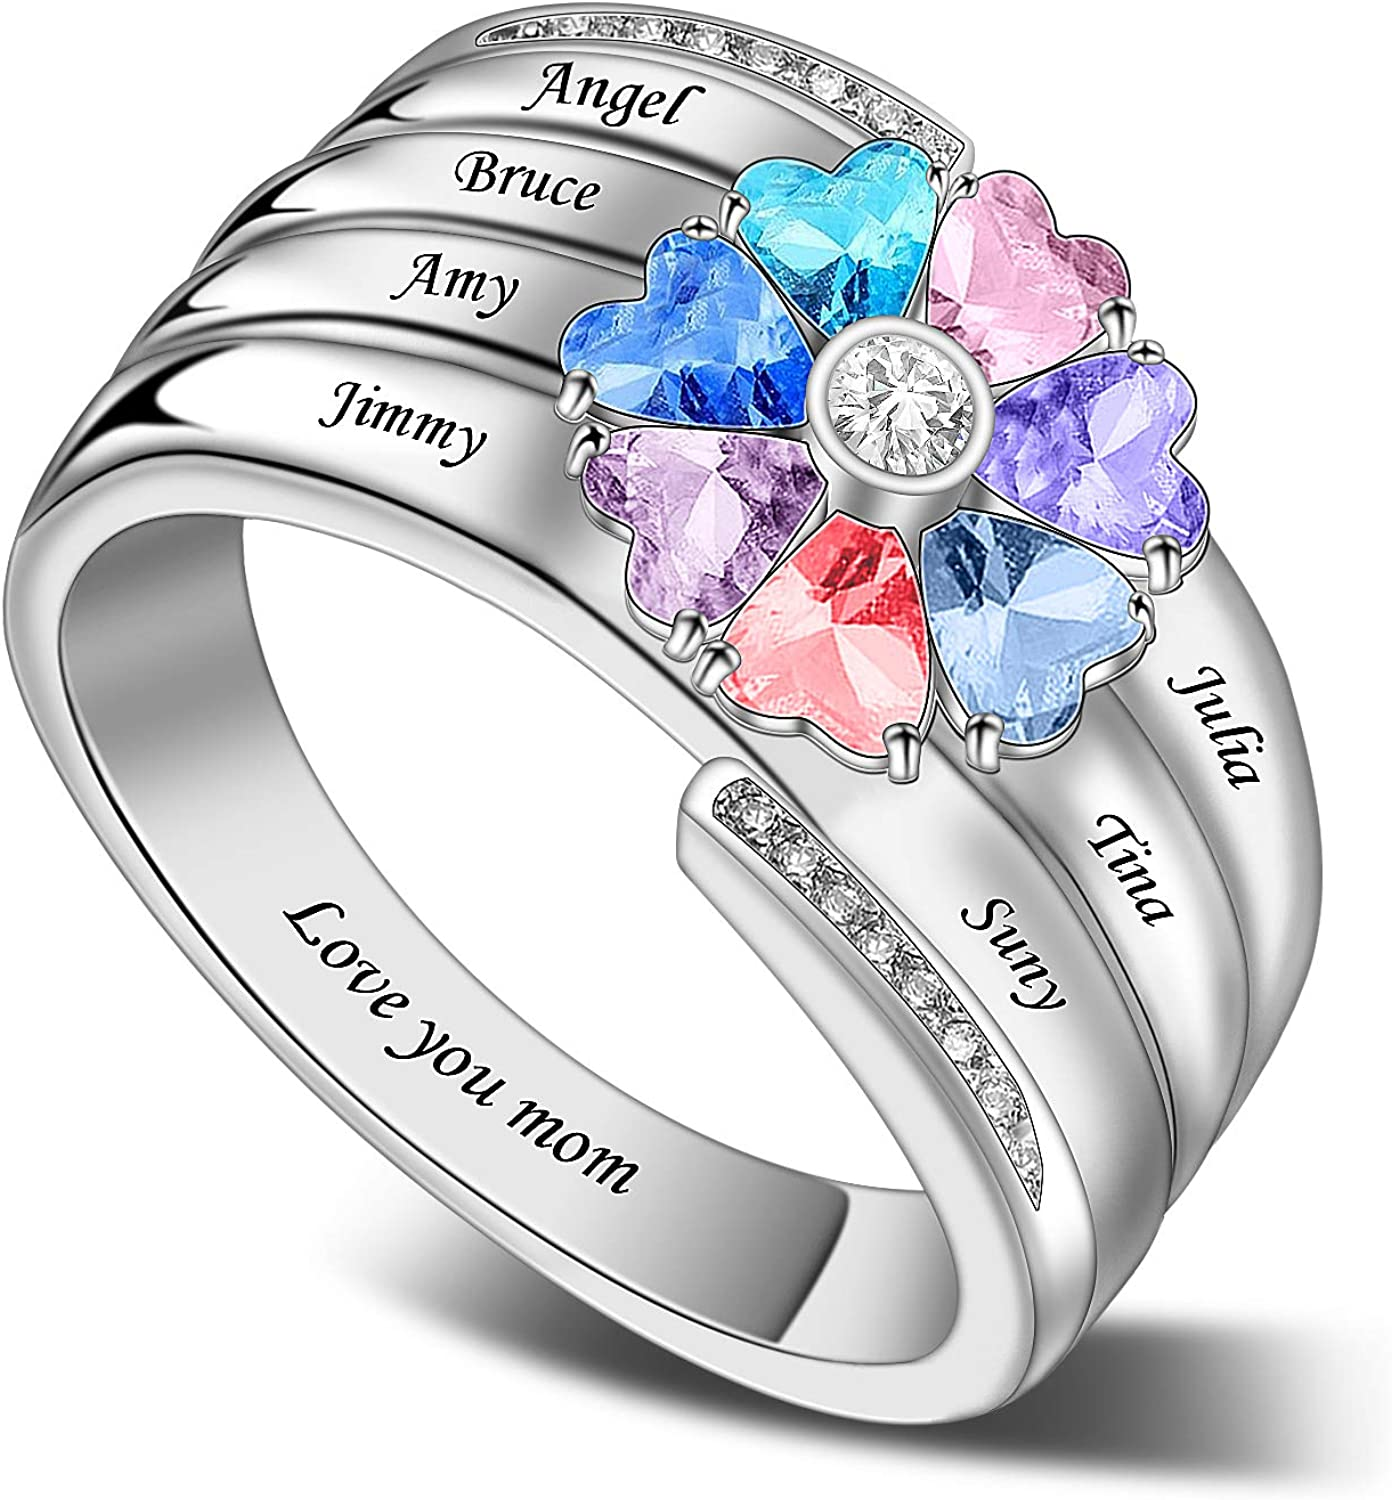 Personalized Sterling Silver Mothers Ring with 2 7 Sim 4 5 3 6 休み 誕生日プレゼント 8